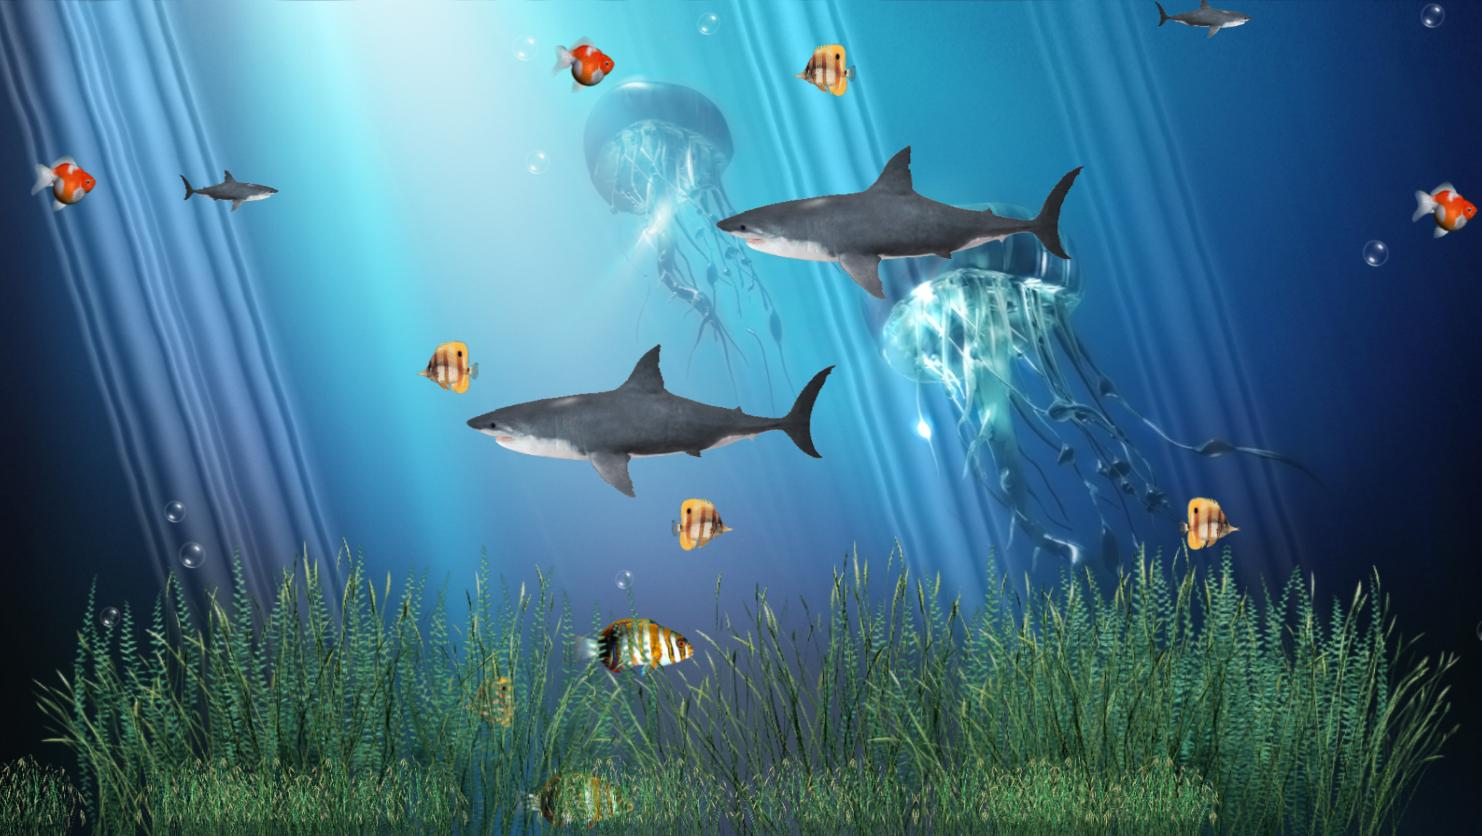 Coral Reef Aquarium Animated Wallpaper screenshot